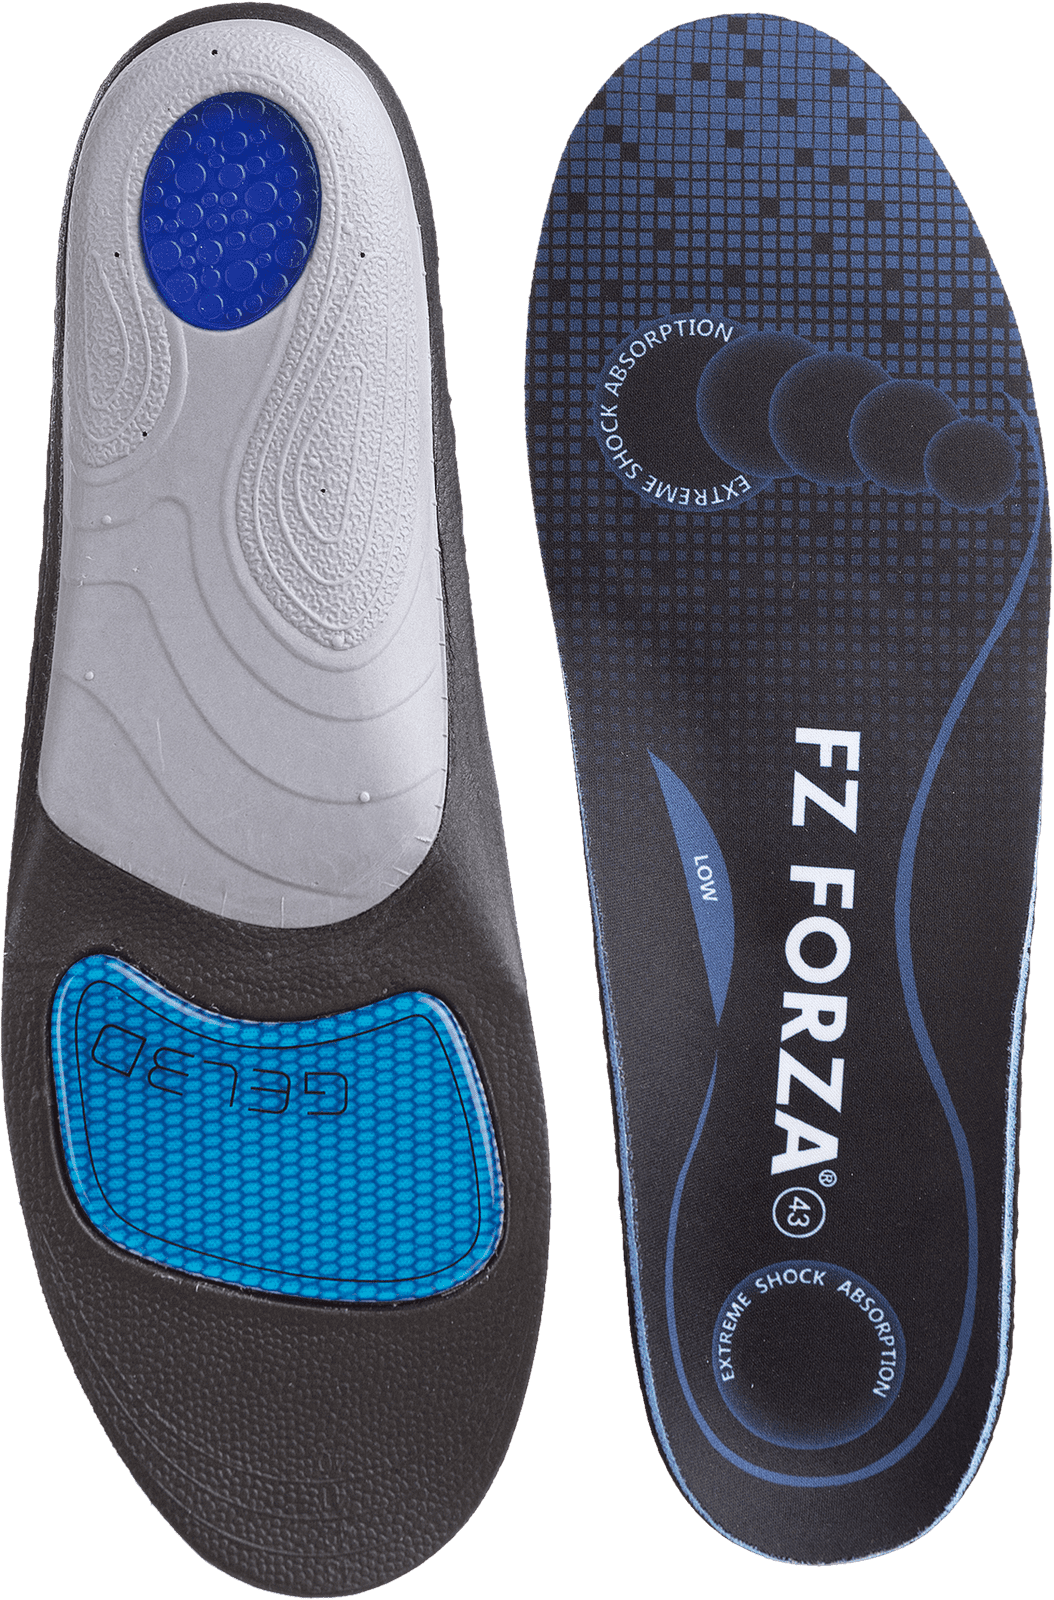 Forza Insole - Arch Support